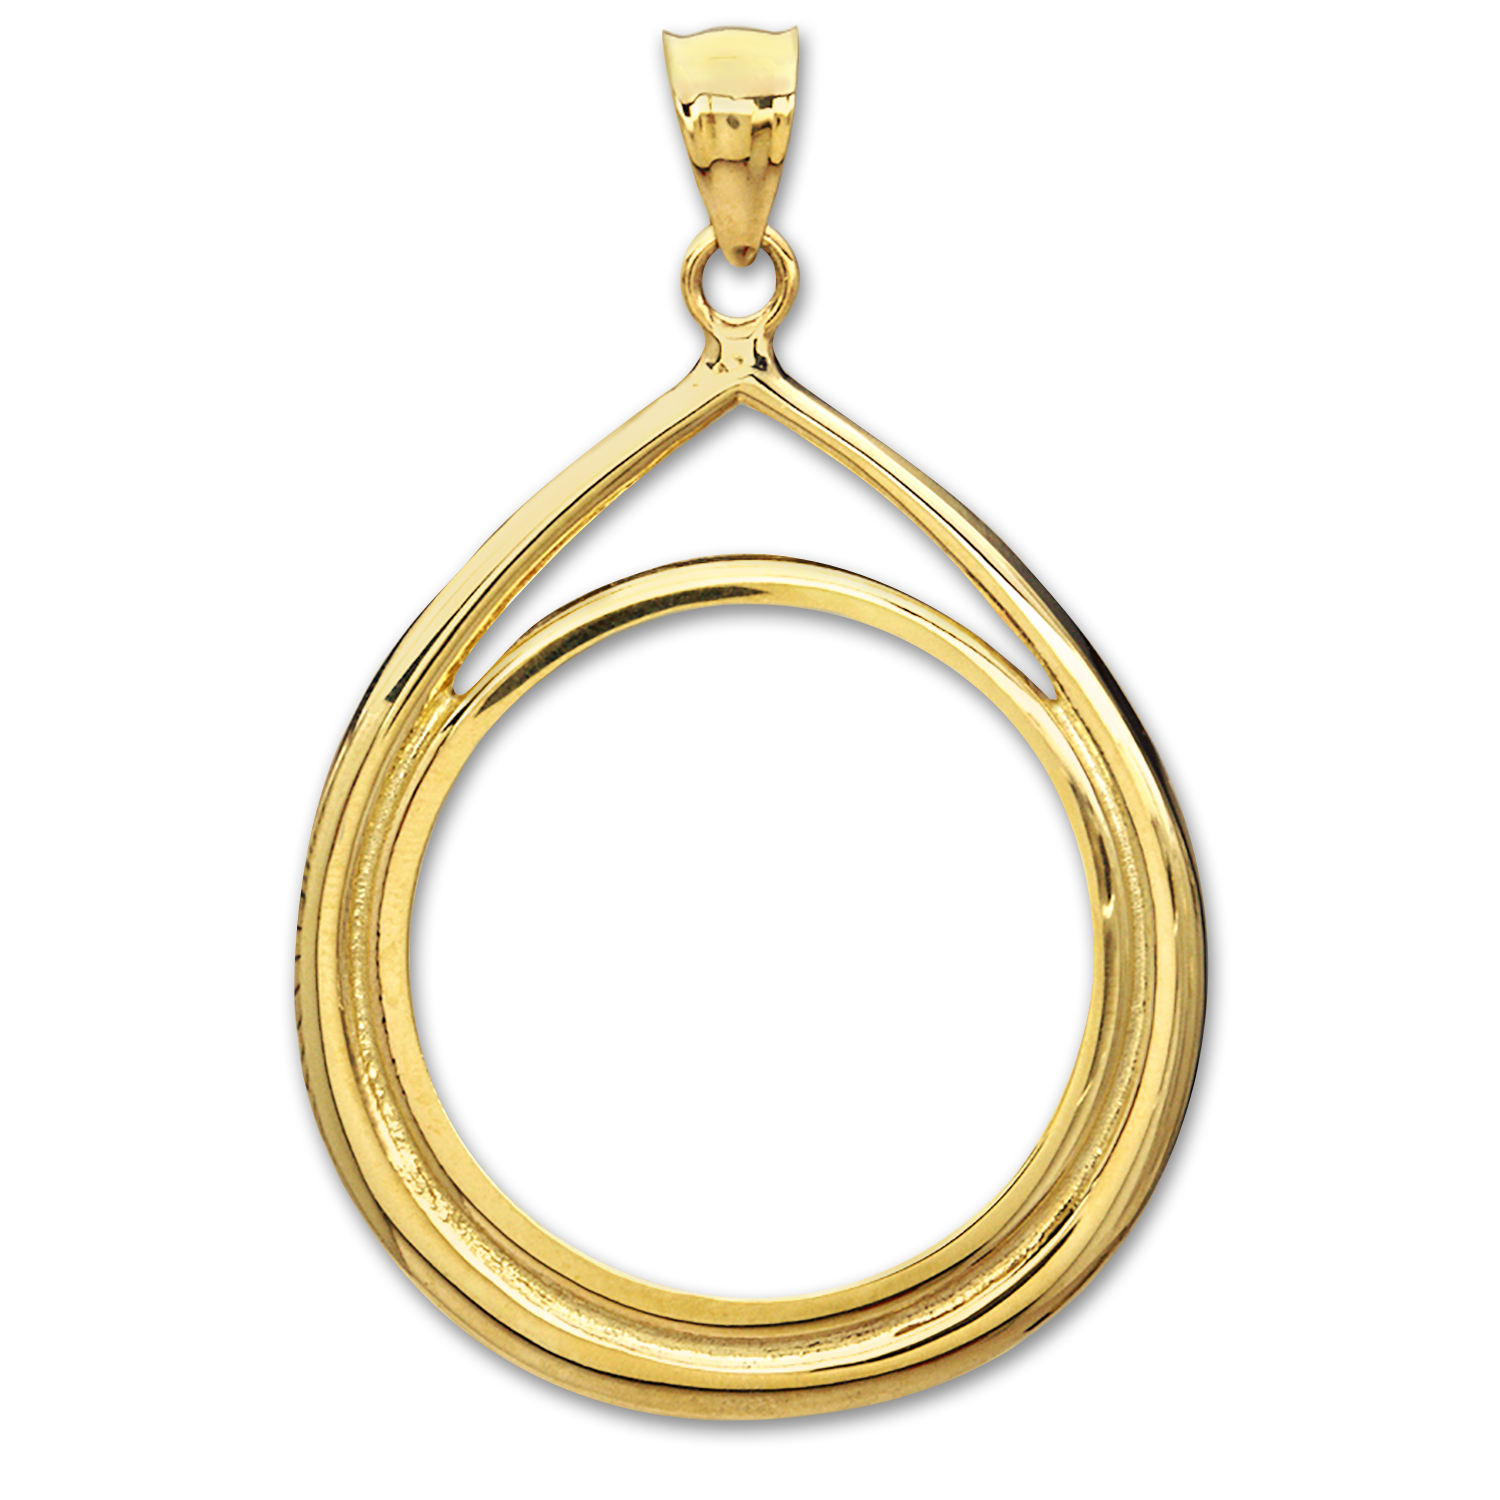 14K Gold Prong Tear Drop Coin Bezel - 18 mm